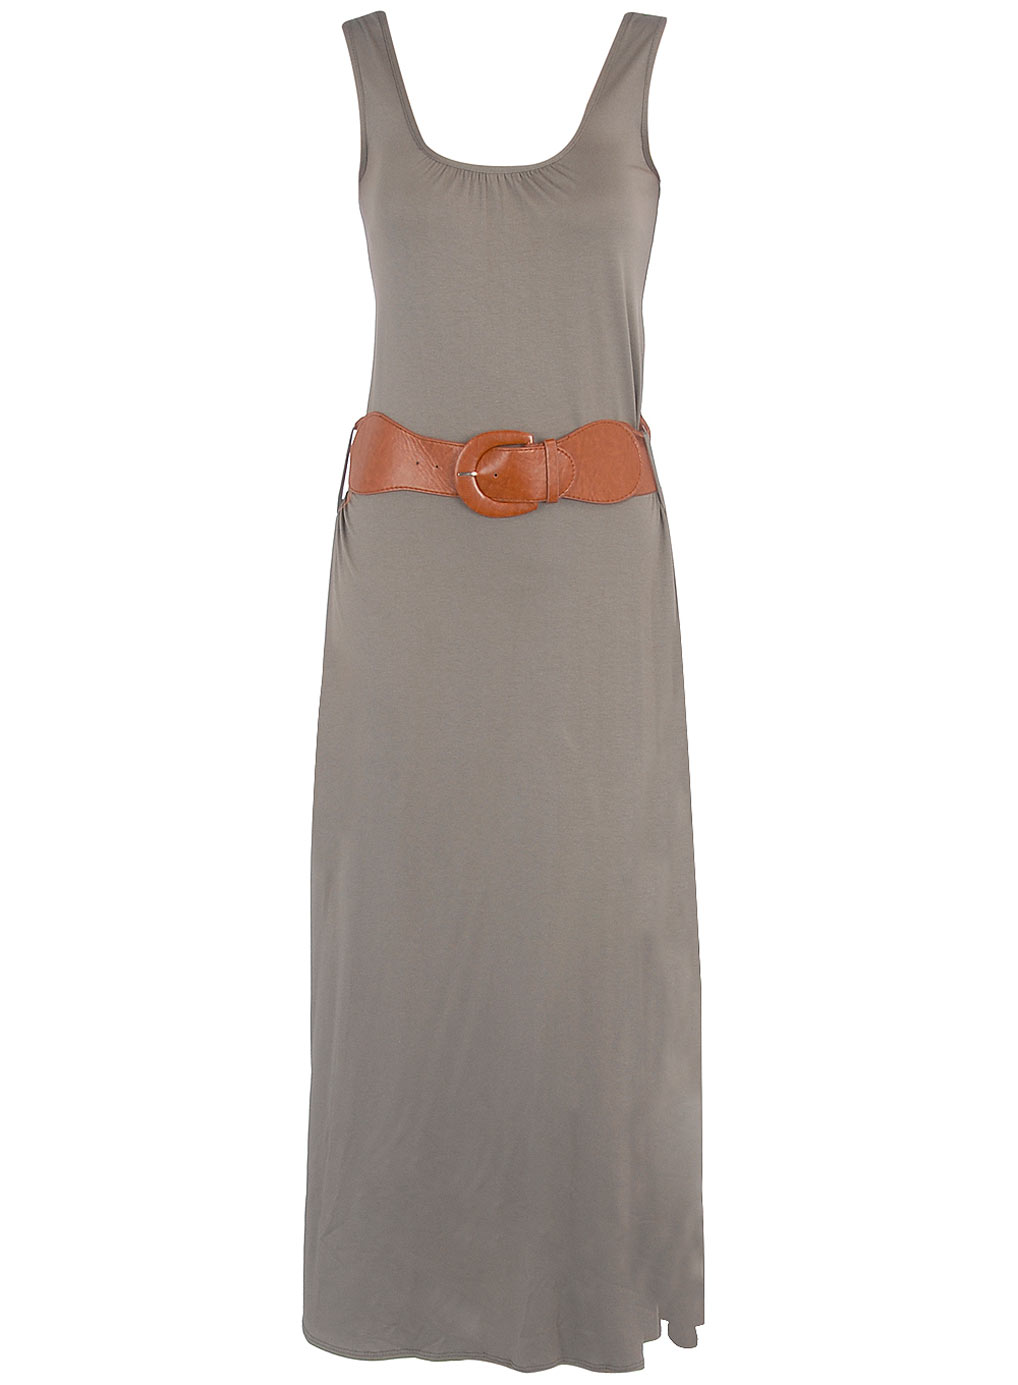 Khaki Belted Maxi Dress from Dorothy Perkins - £30